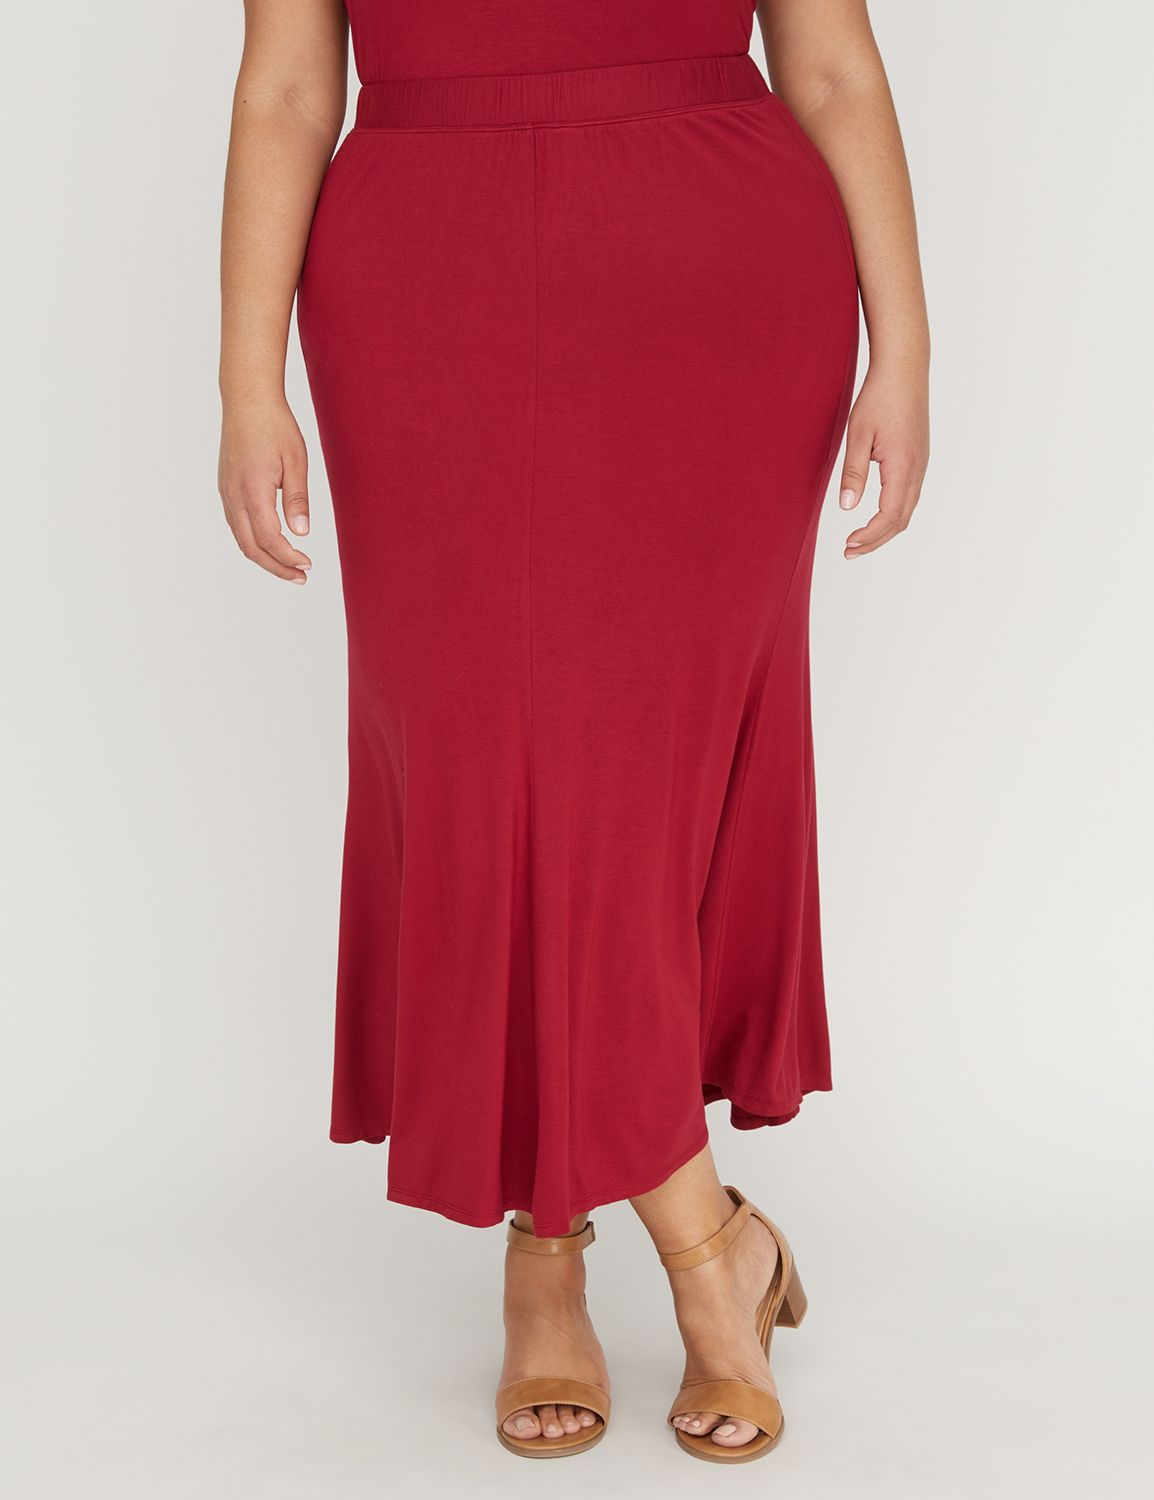 1930s Style Skirts : Midi Skirts, Tea Length, Pleated Curvy Collection Crimson Gore Maxi Skirt $59.00 AT vintagedancer.com